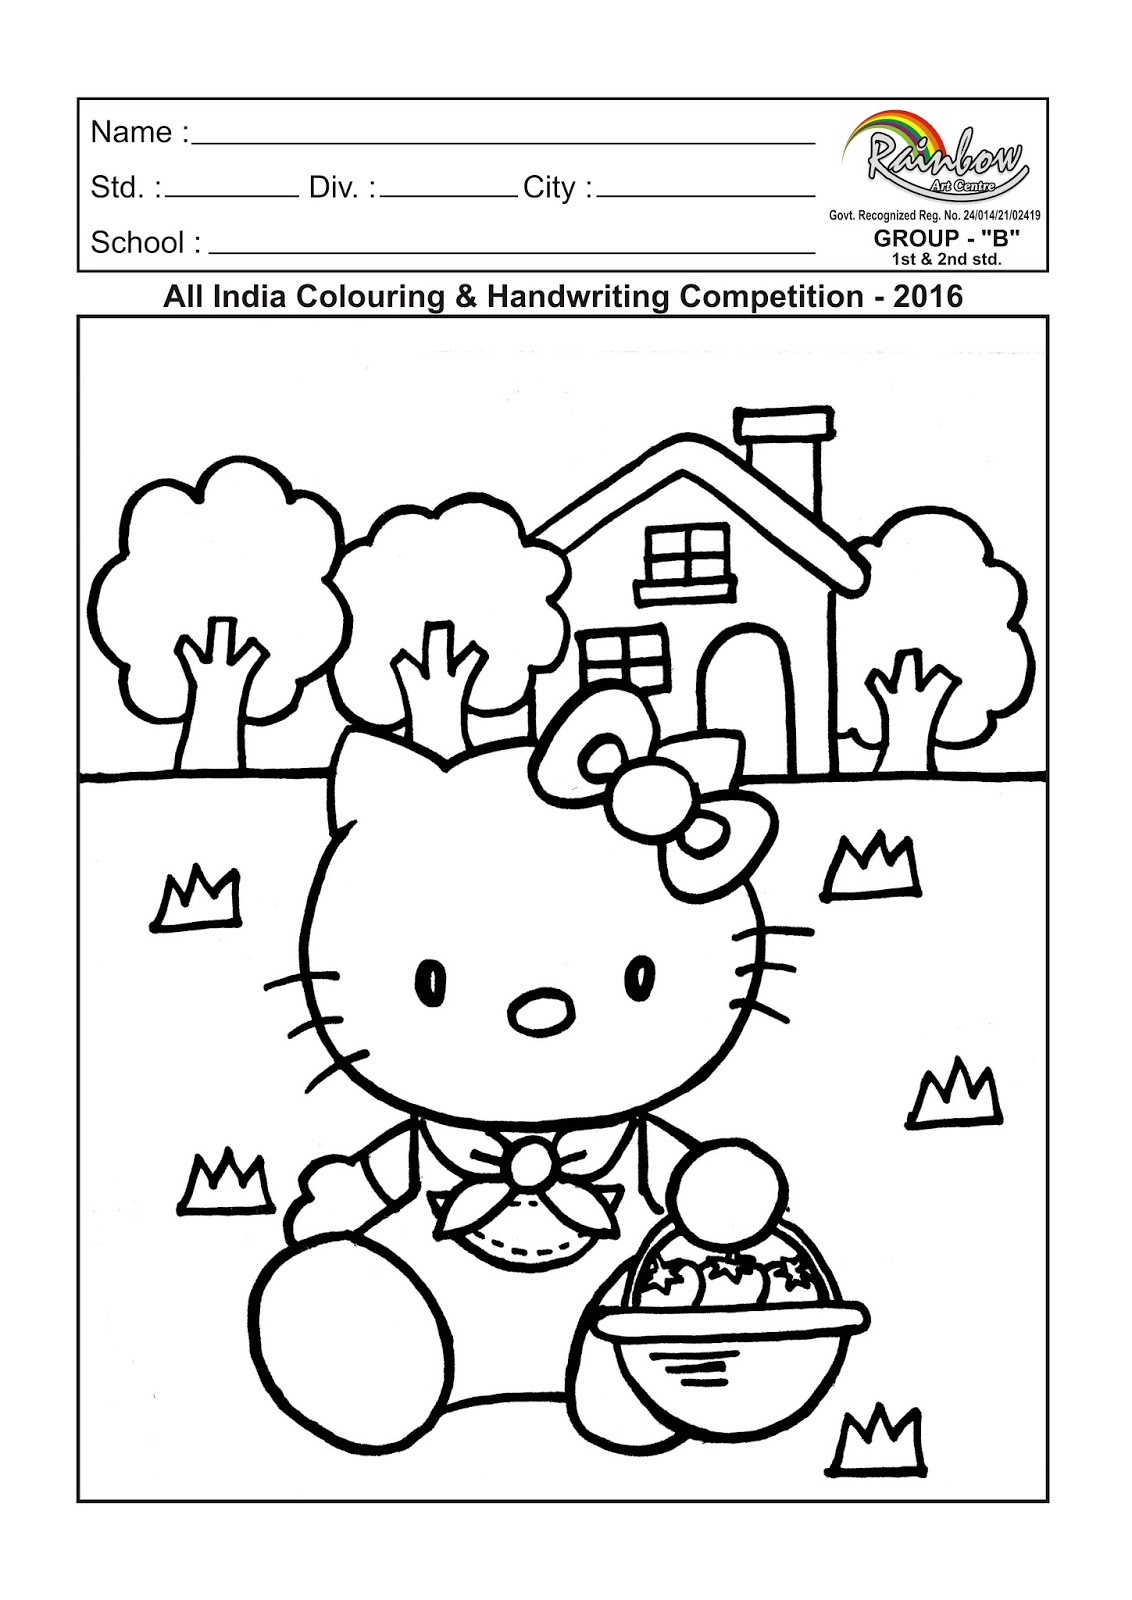 Rainbow Art Centre: ALL INDIA COLOURING AND HANDWRITING